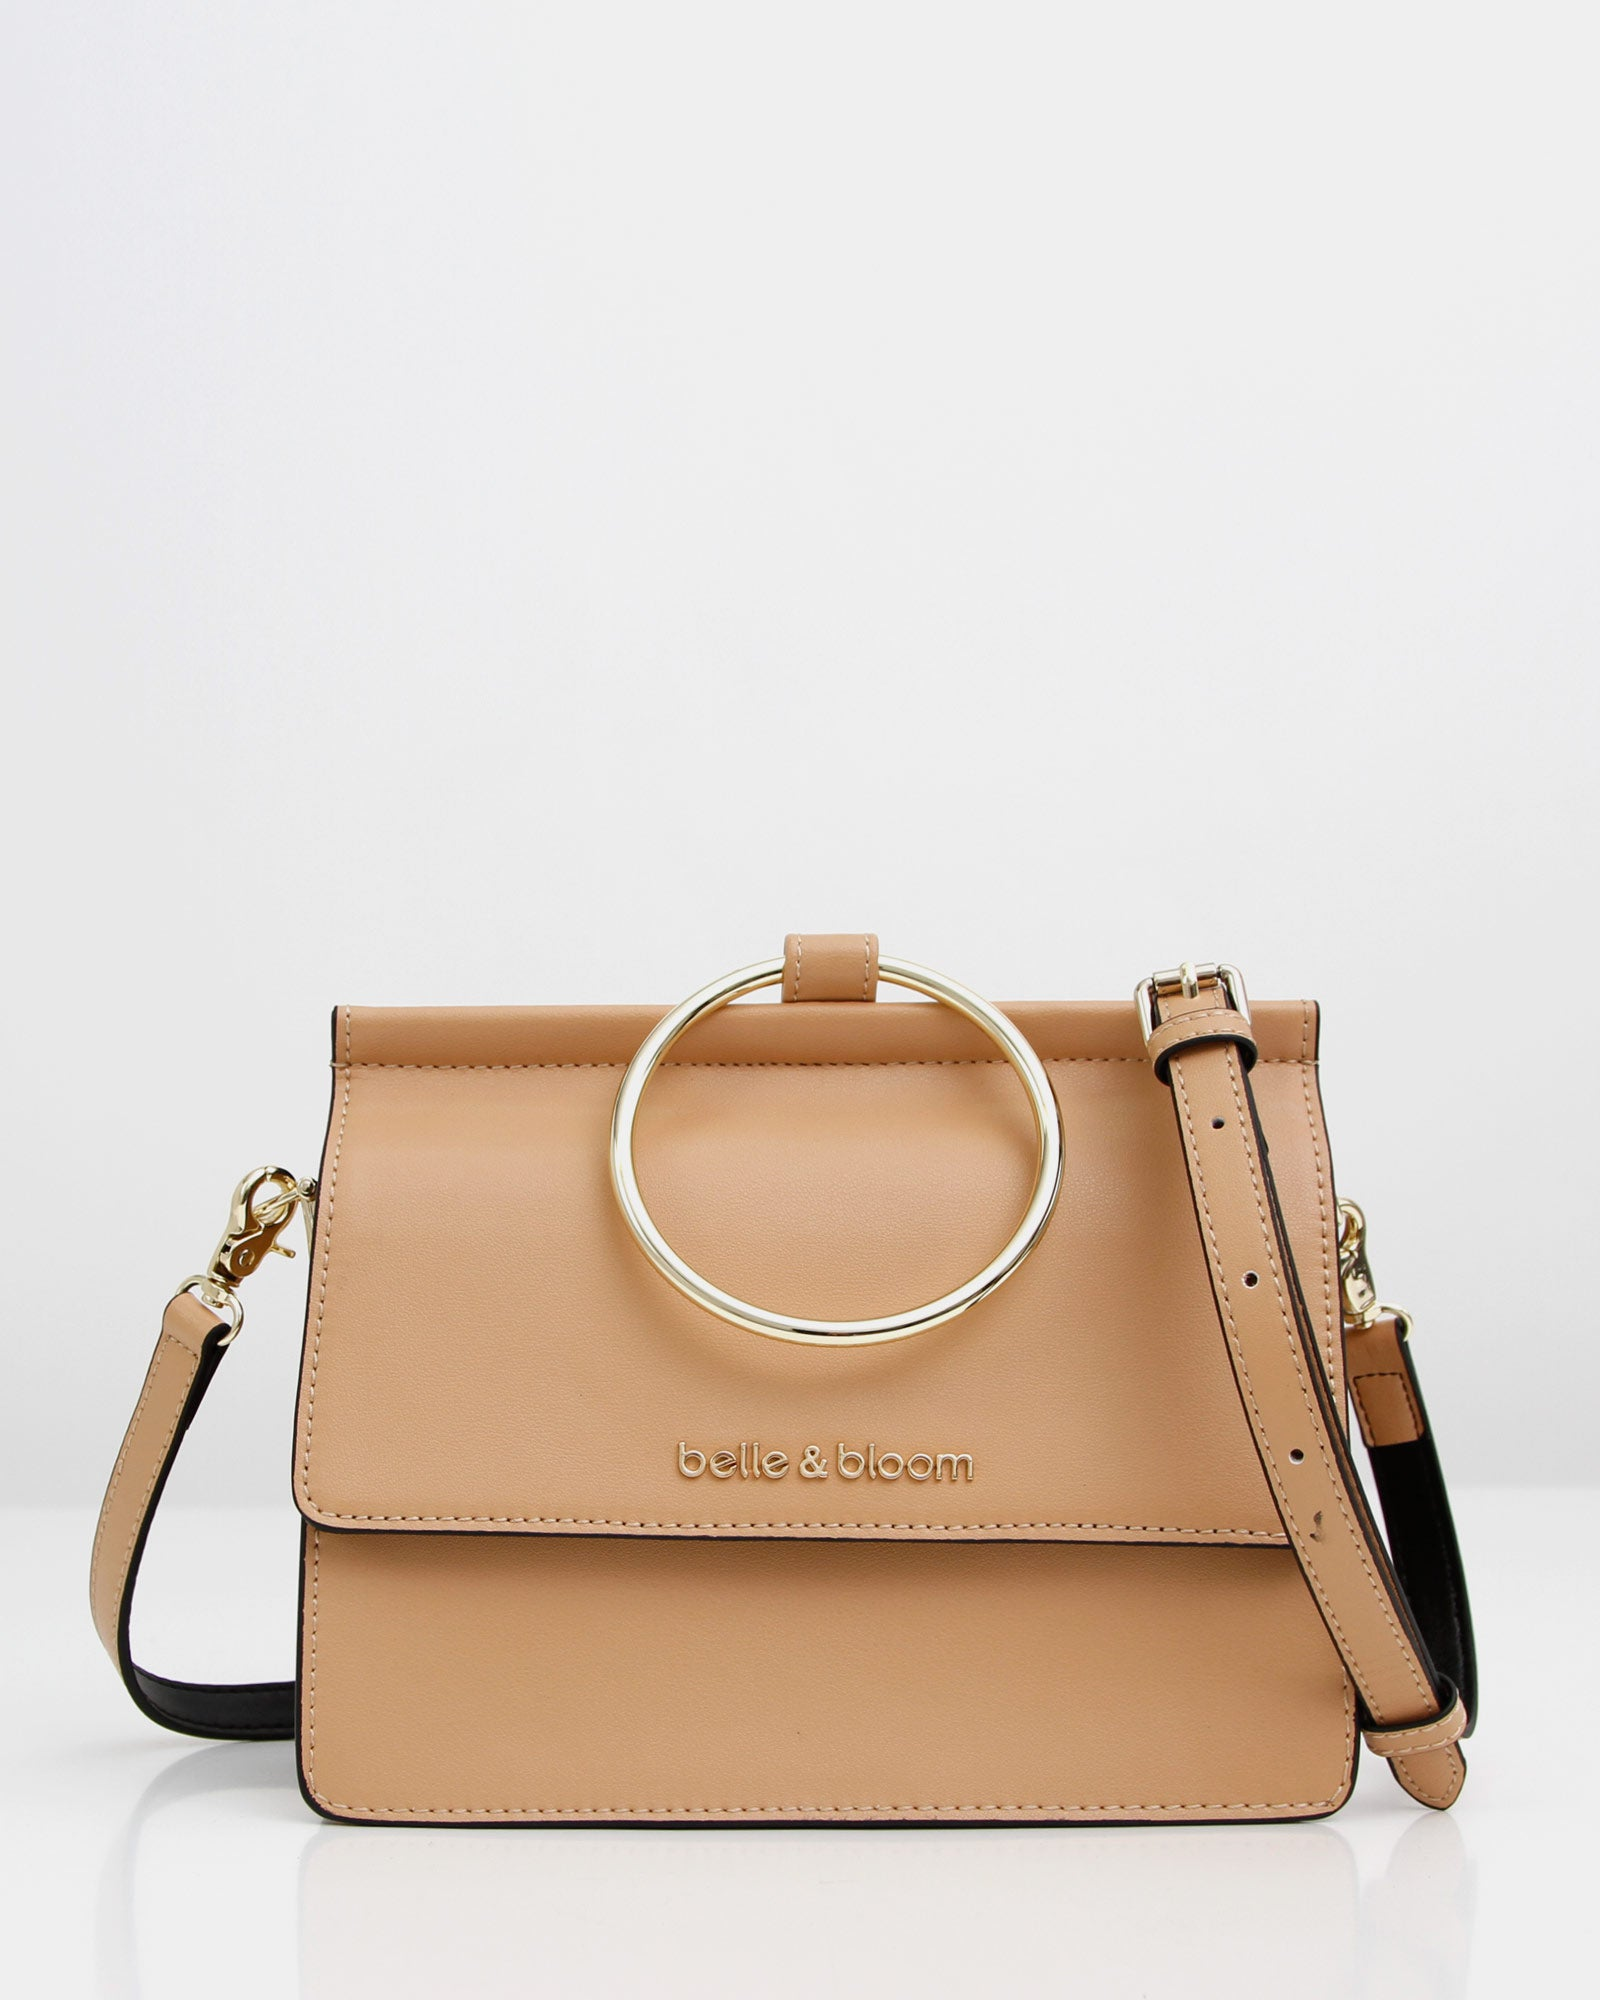 briana%20tan%20leather%20handbag7.jpg